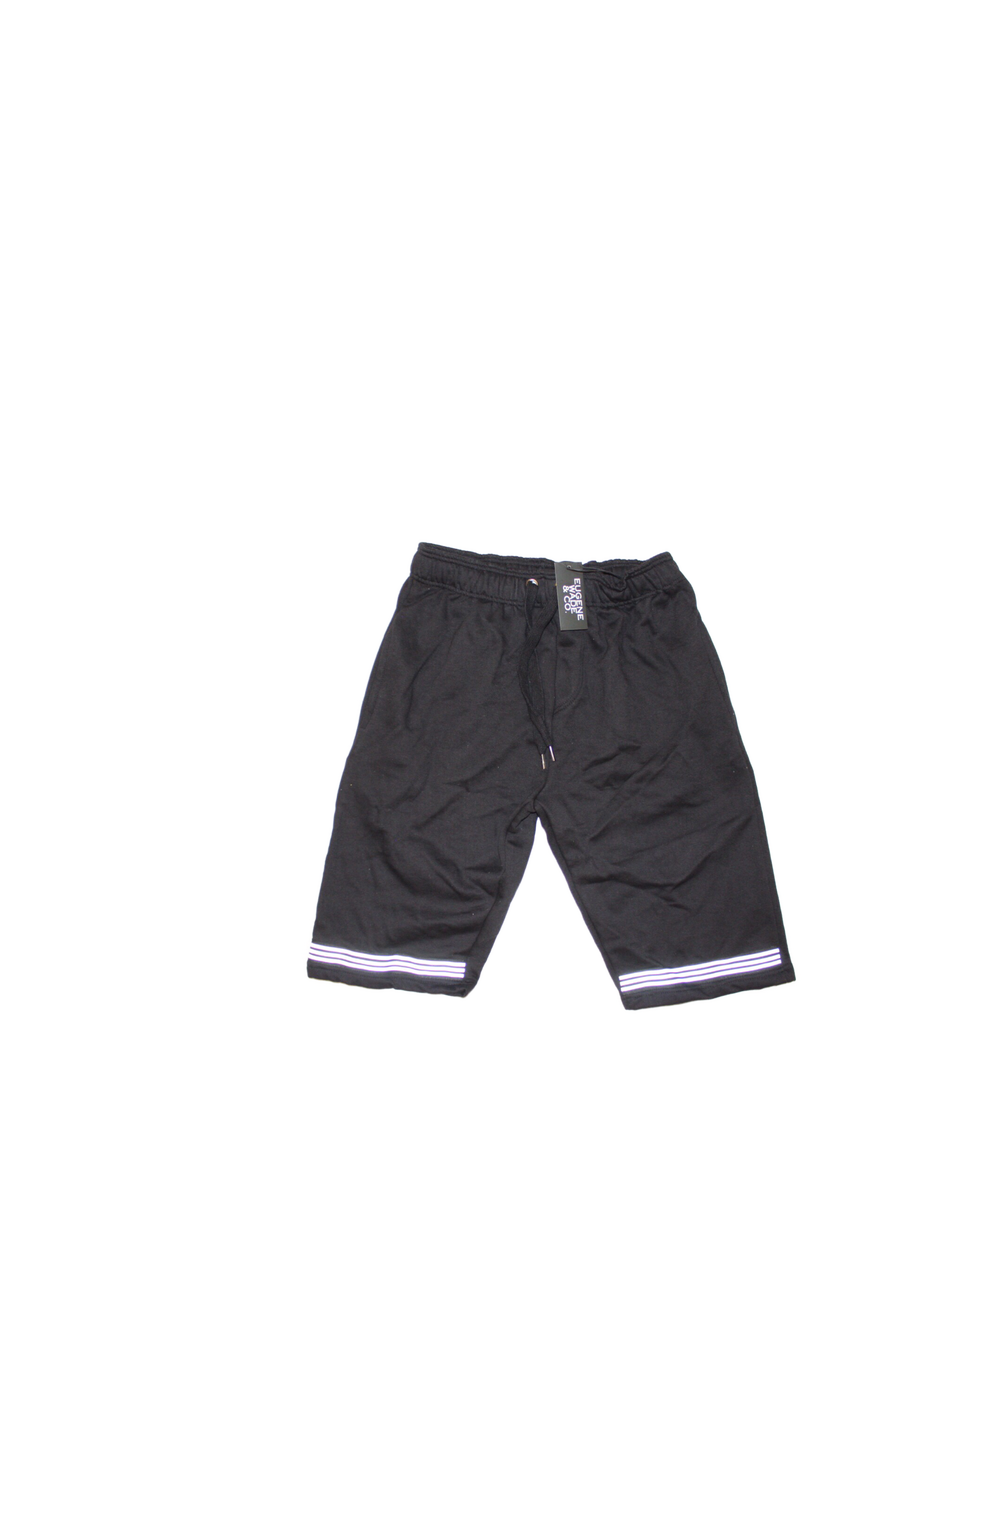 REFLECTIVE SHORTS (Black)